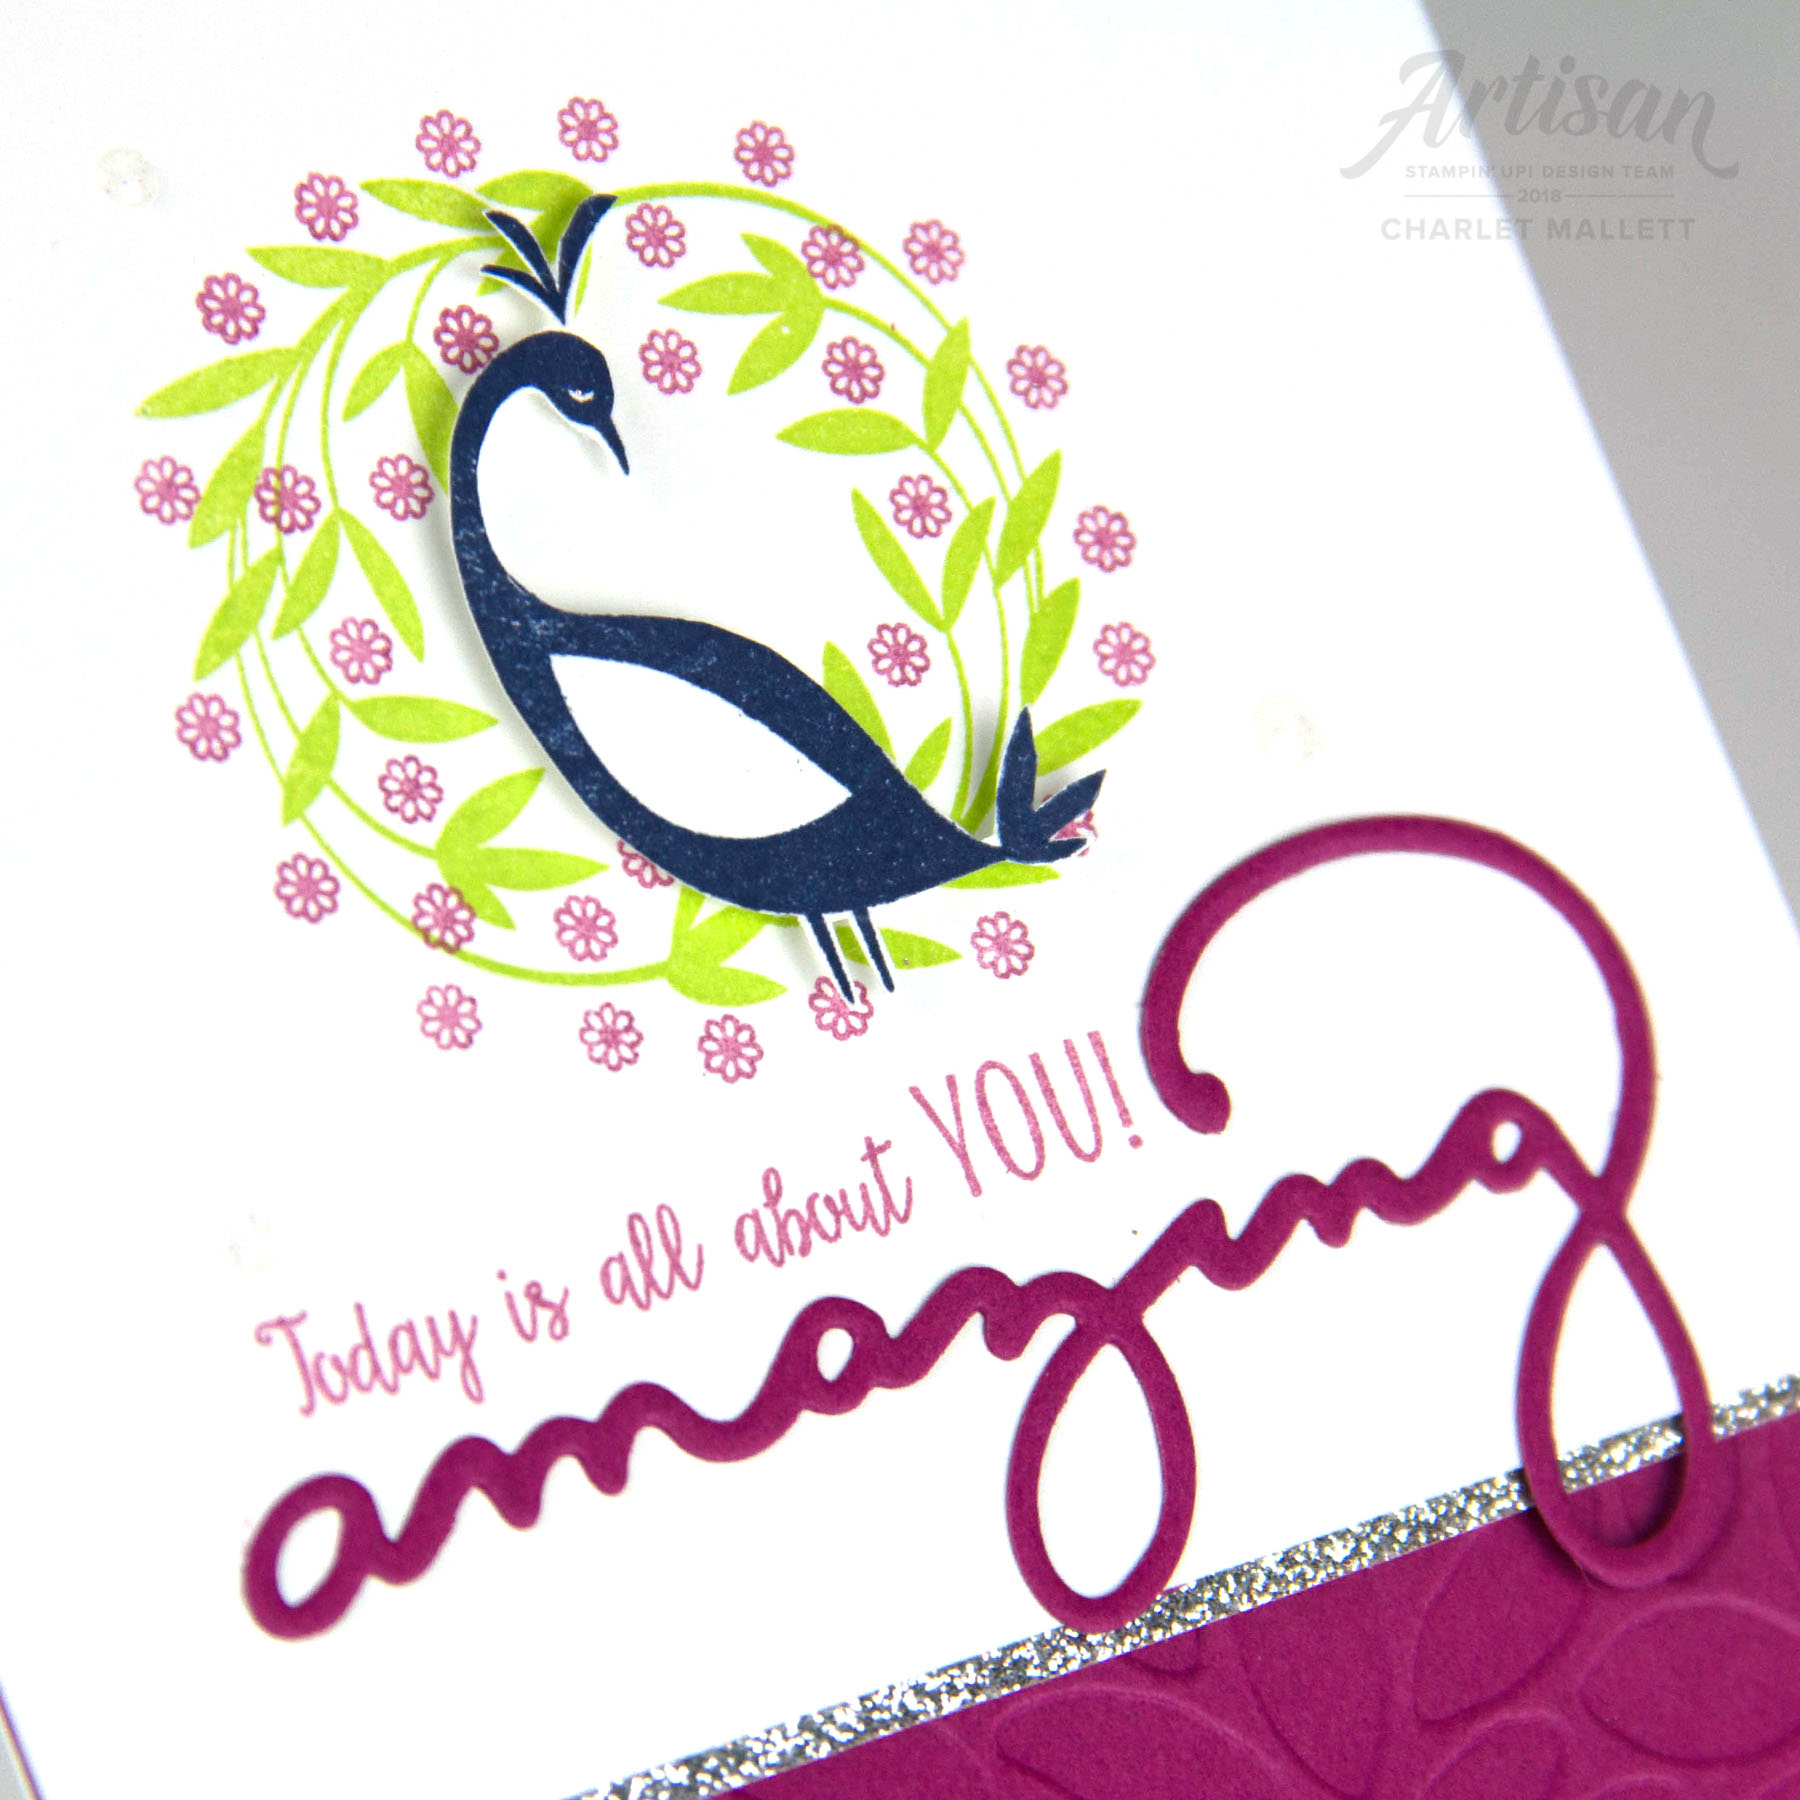 Pretty Peacock card - Charlet Mallett - Stampin' Up!